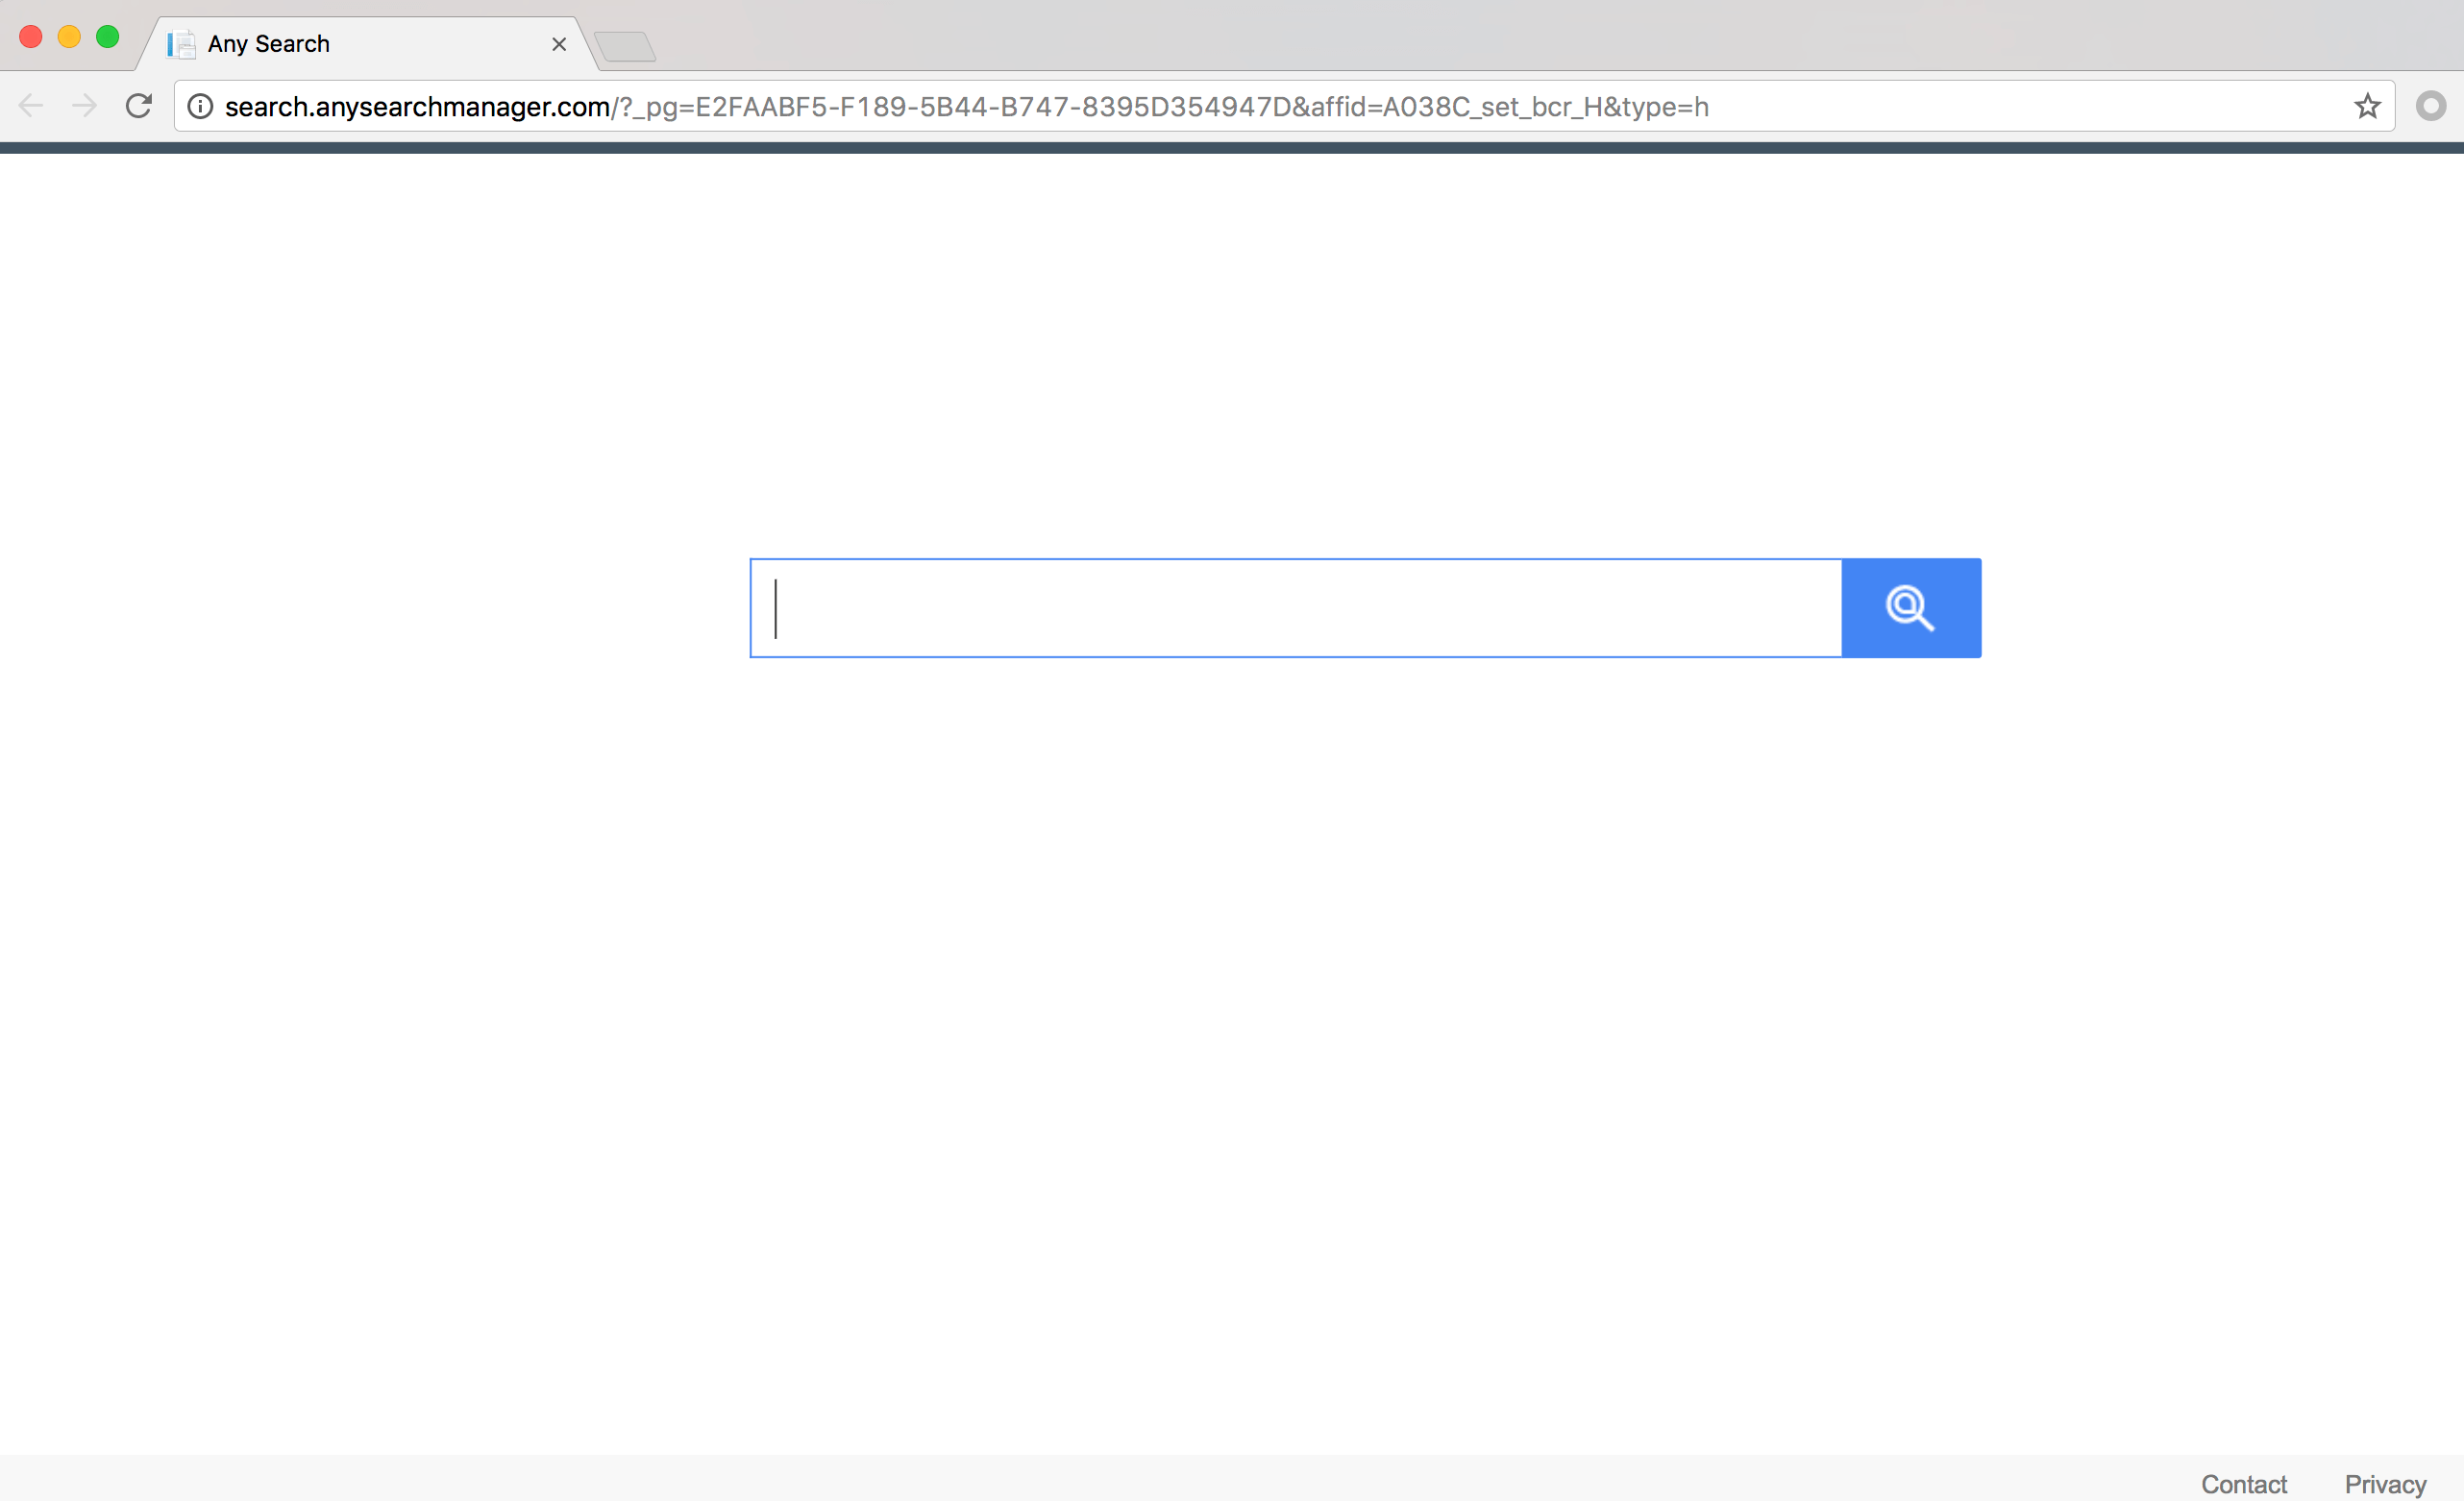 search.anysearchmanager.com